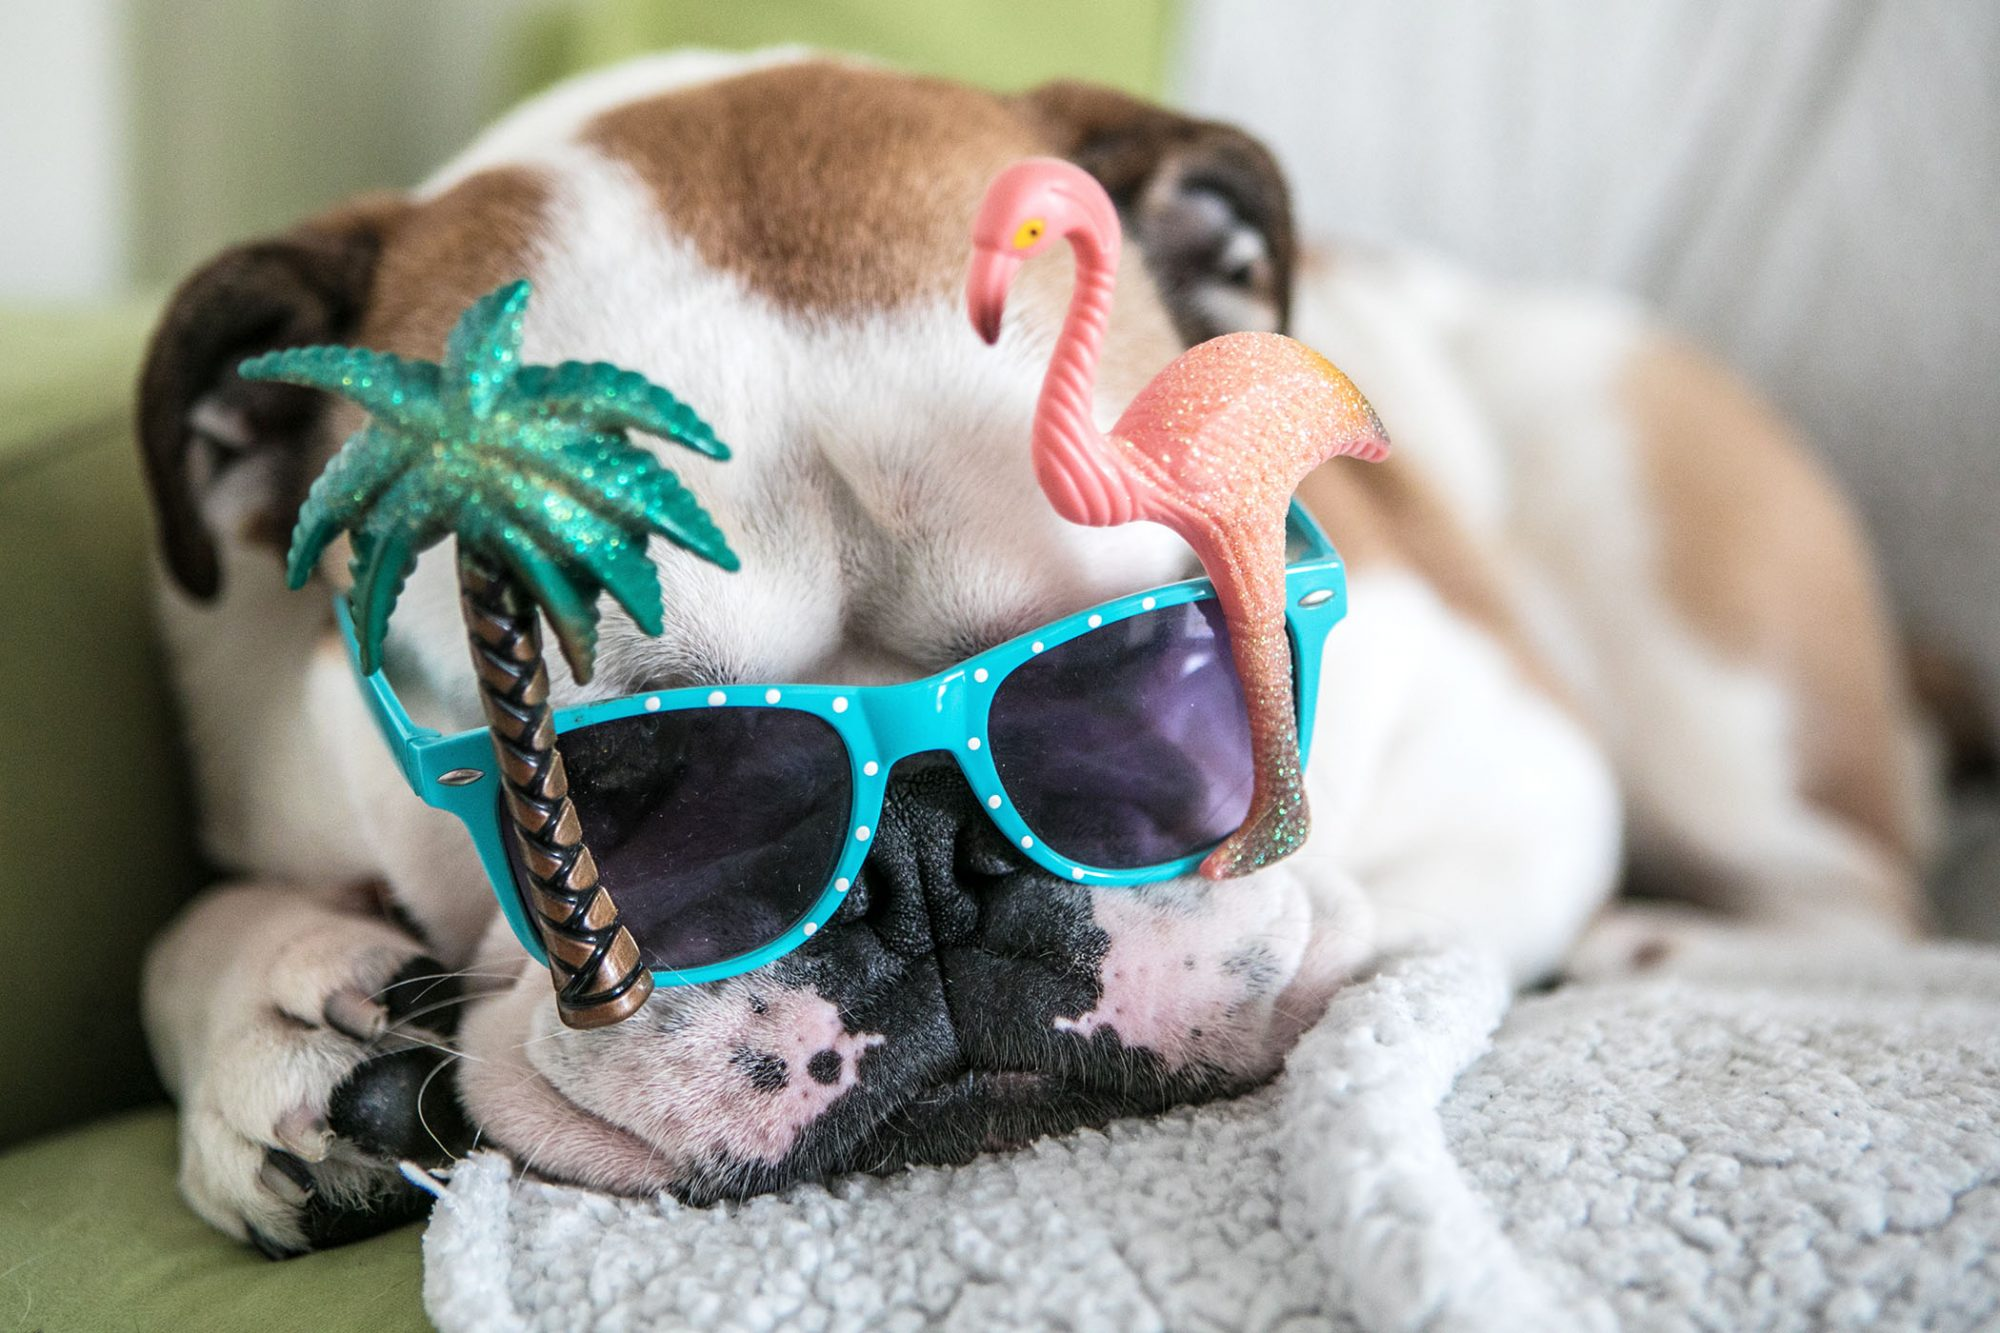 bulldog wearing sunglasses